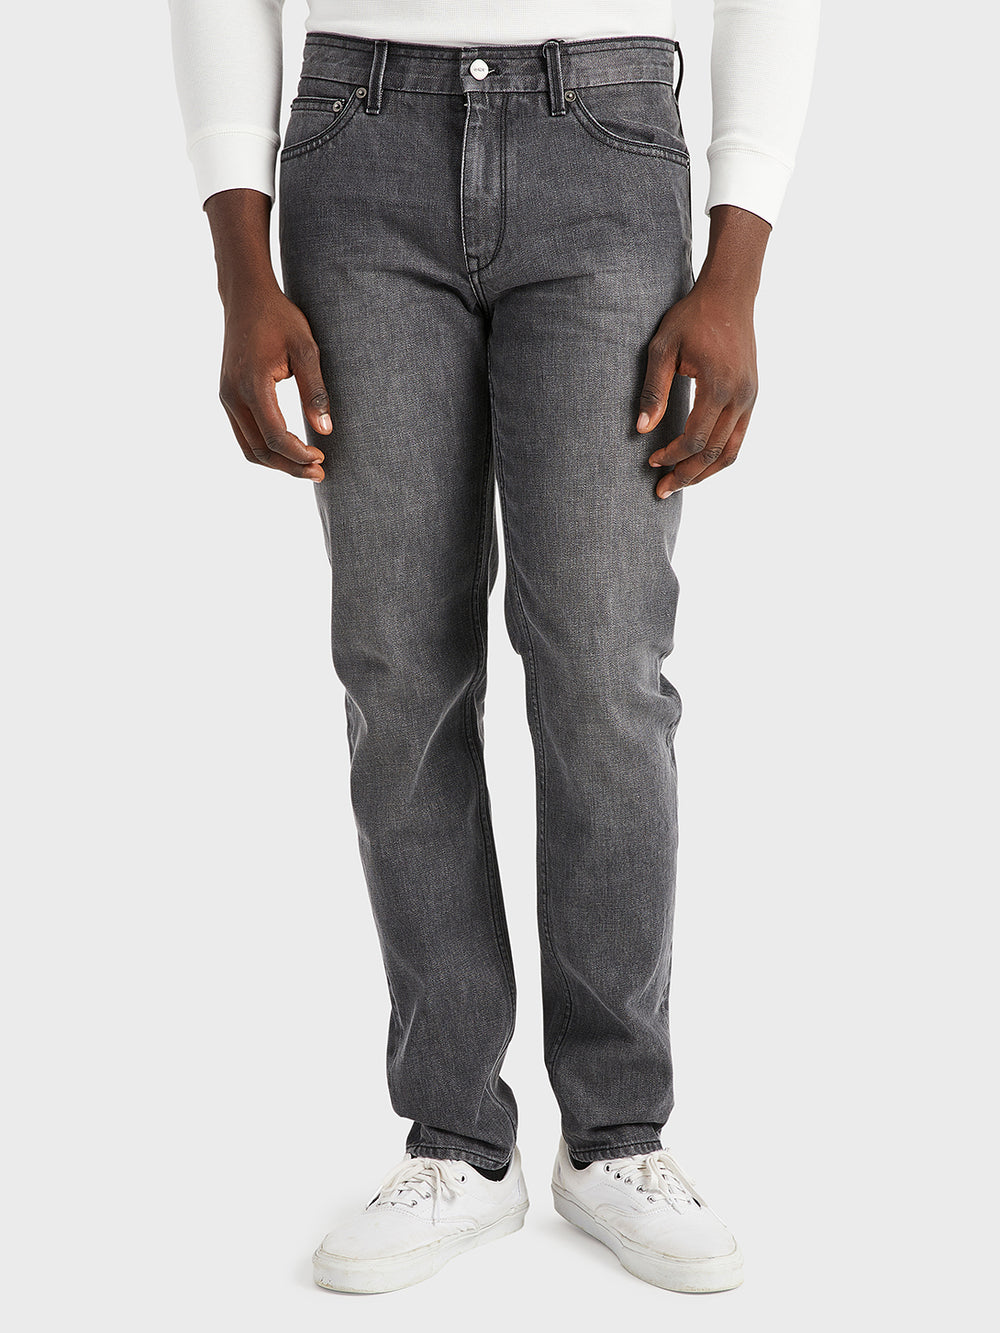 ONS Clothing Men's pants in DK GREY black friday deals